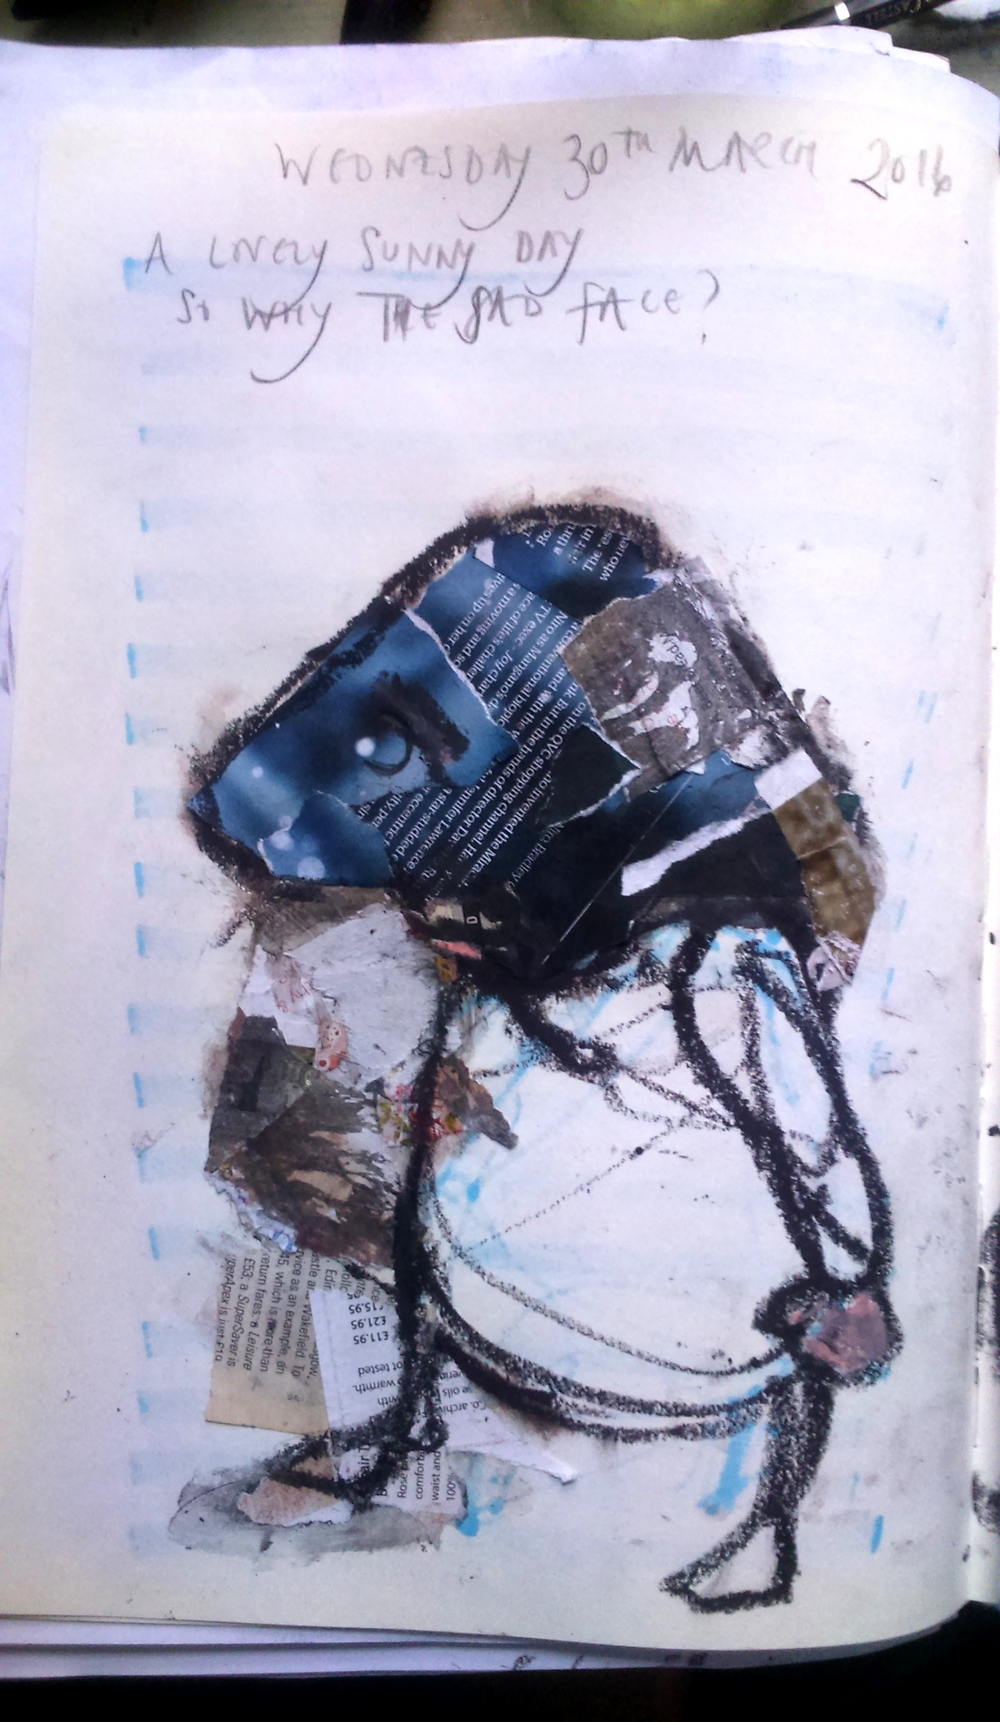 August Creative Challenge: Conveying emotions through colour and distortion: use of appropriately coloured collaged pieces and oversized head to convey weight of feelings. From Morag's daily visual diary 2016